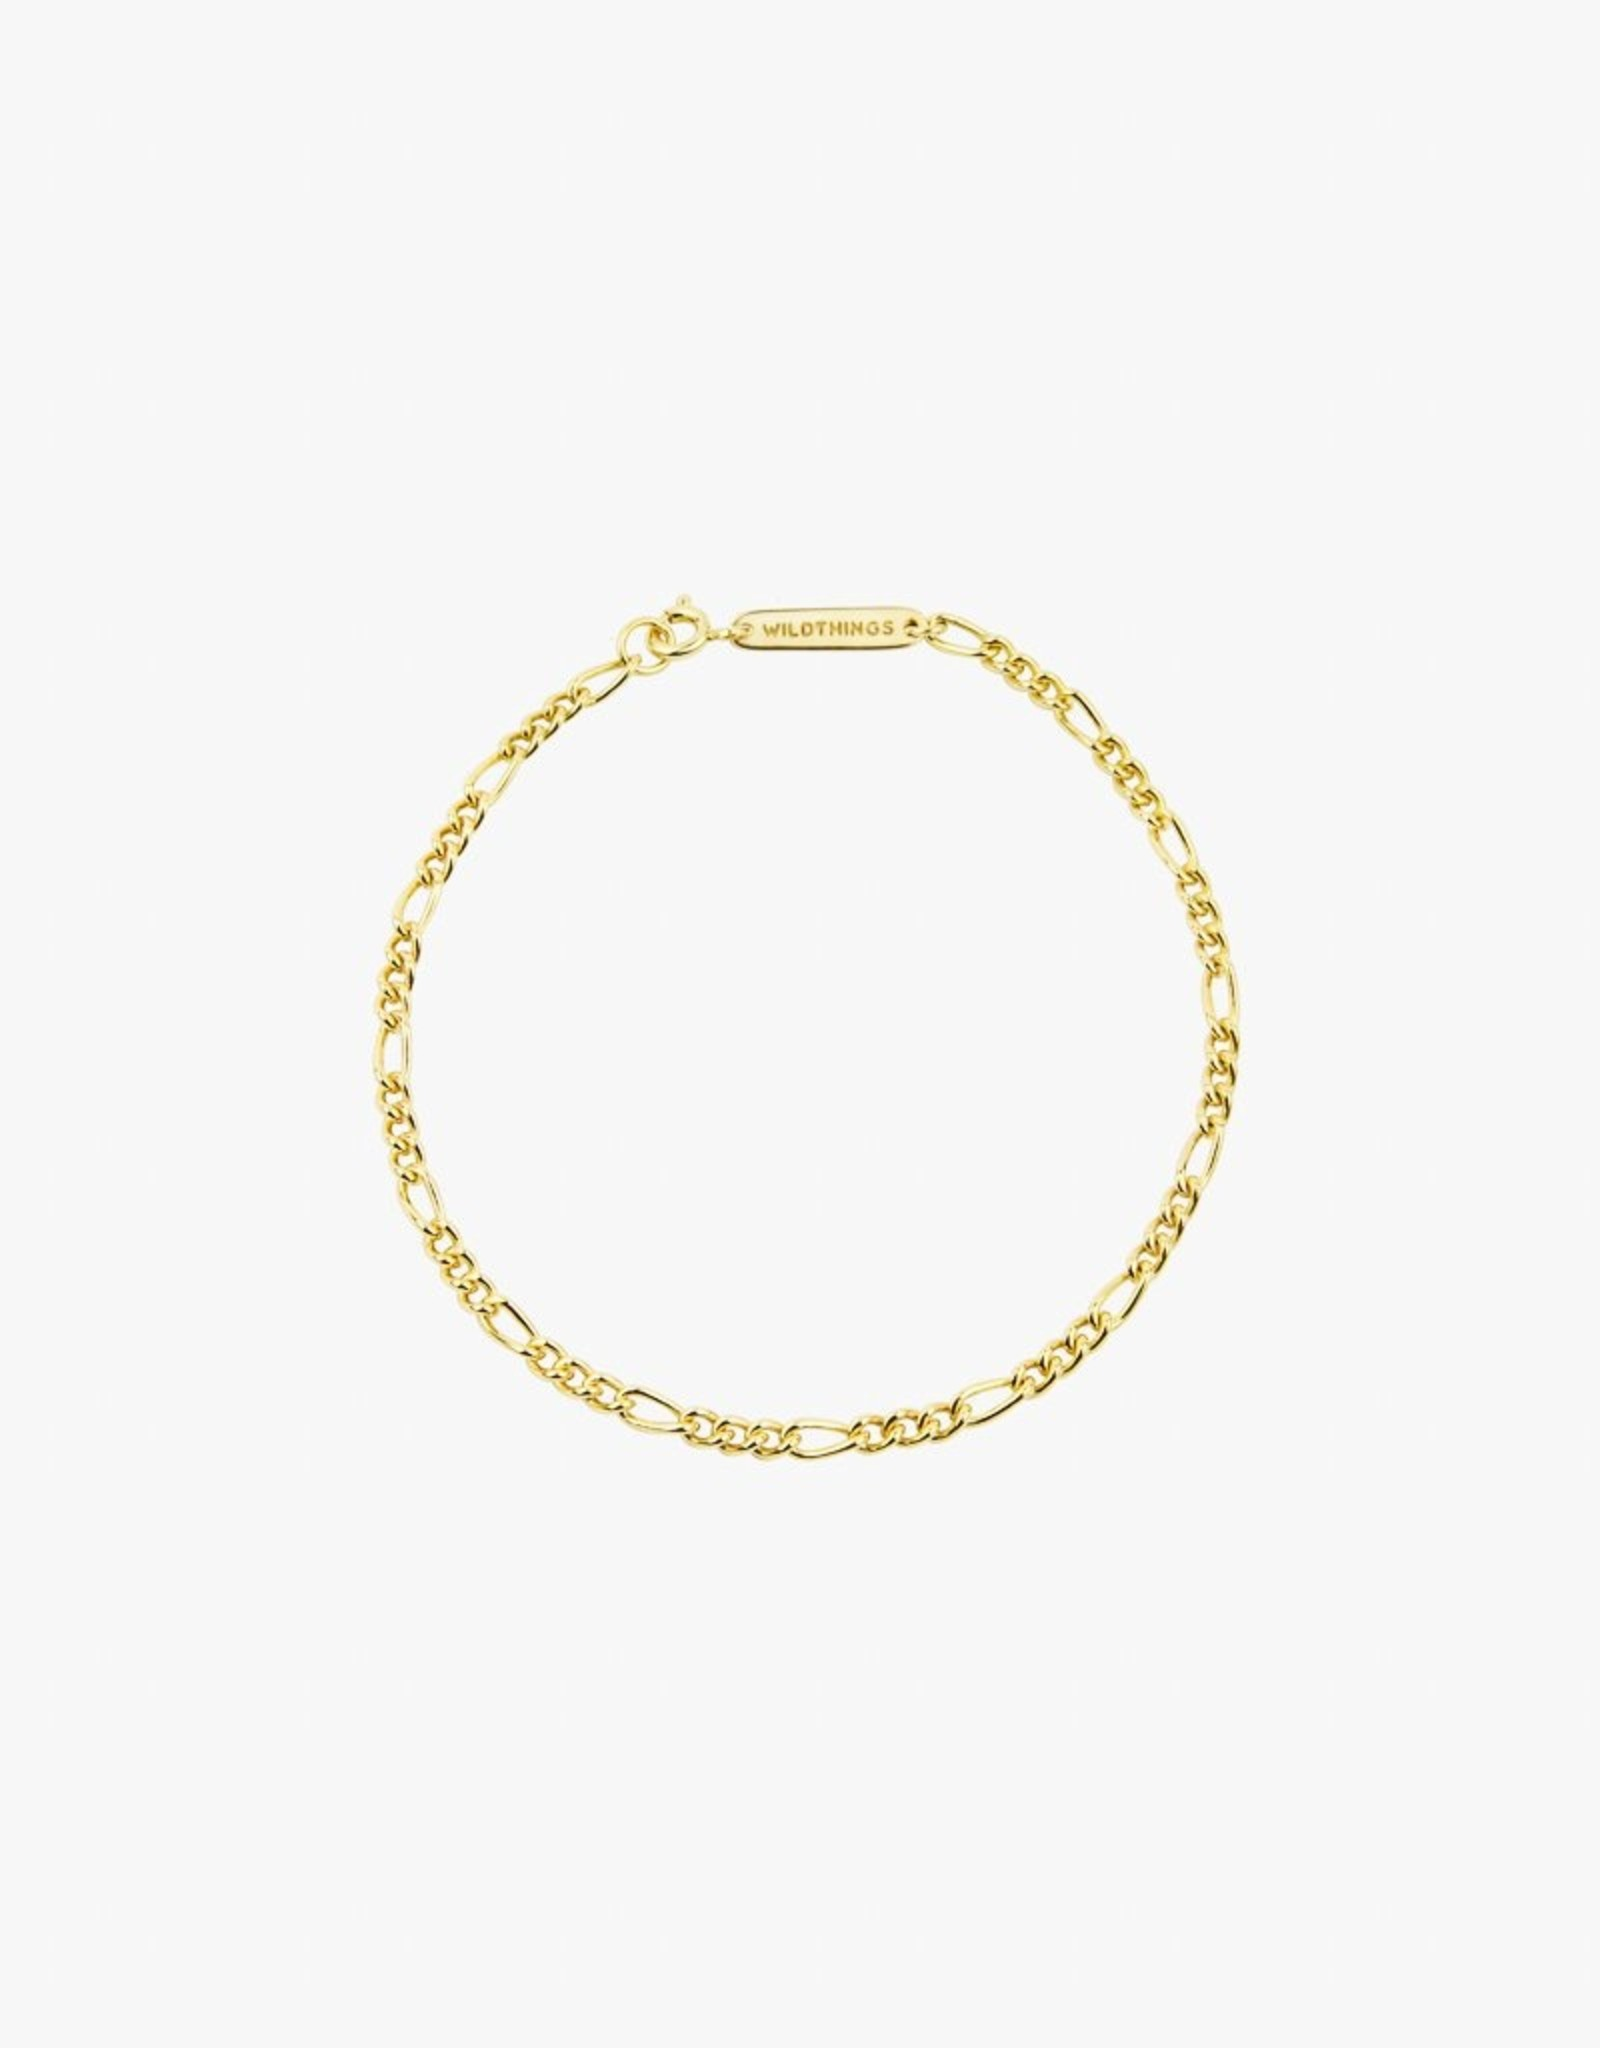 Wildthings Collectables Figaro Bracelet Gold